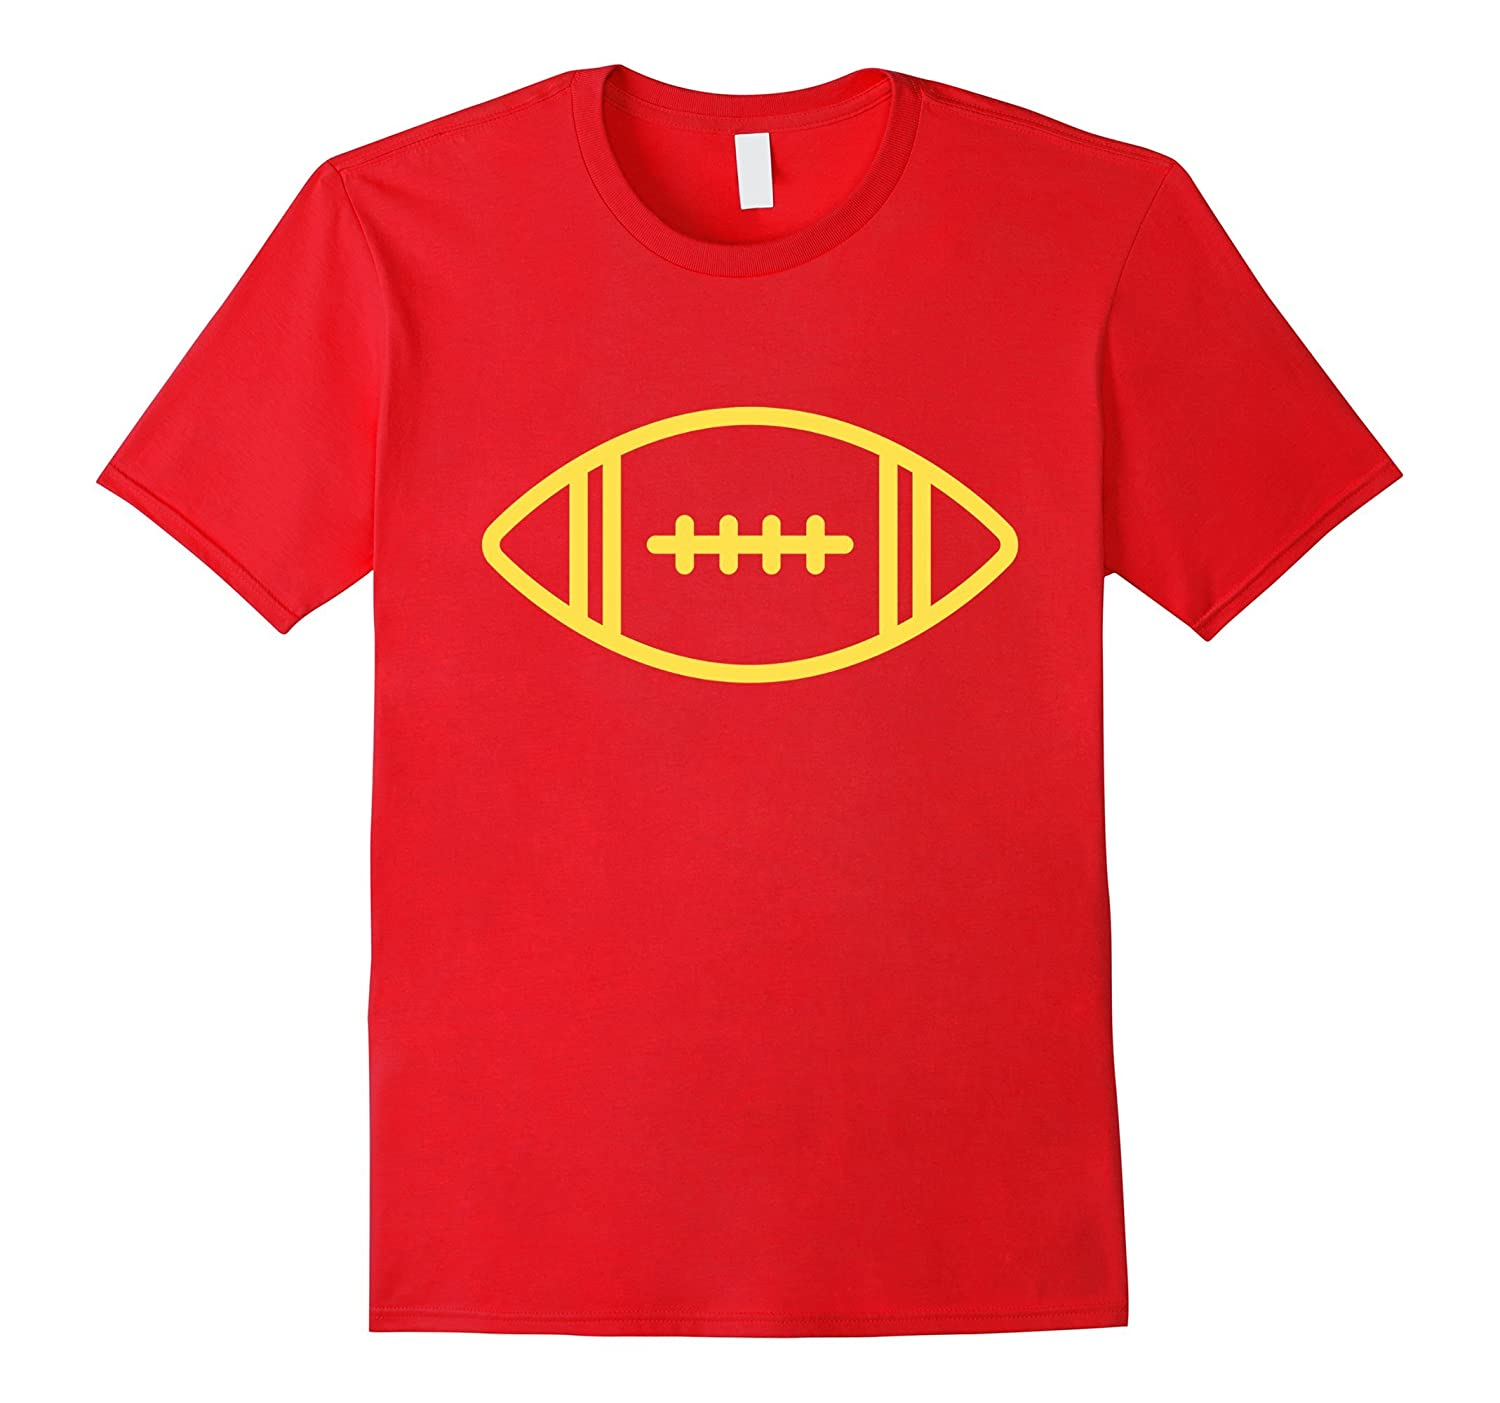 Cool Gold Football T-Shirt for Men Women Boys  Girls-TJ